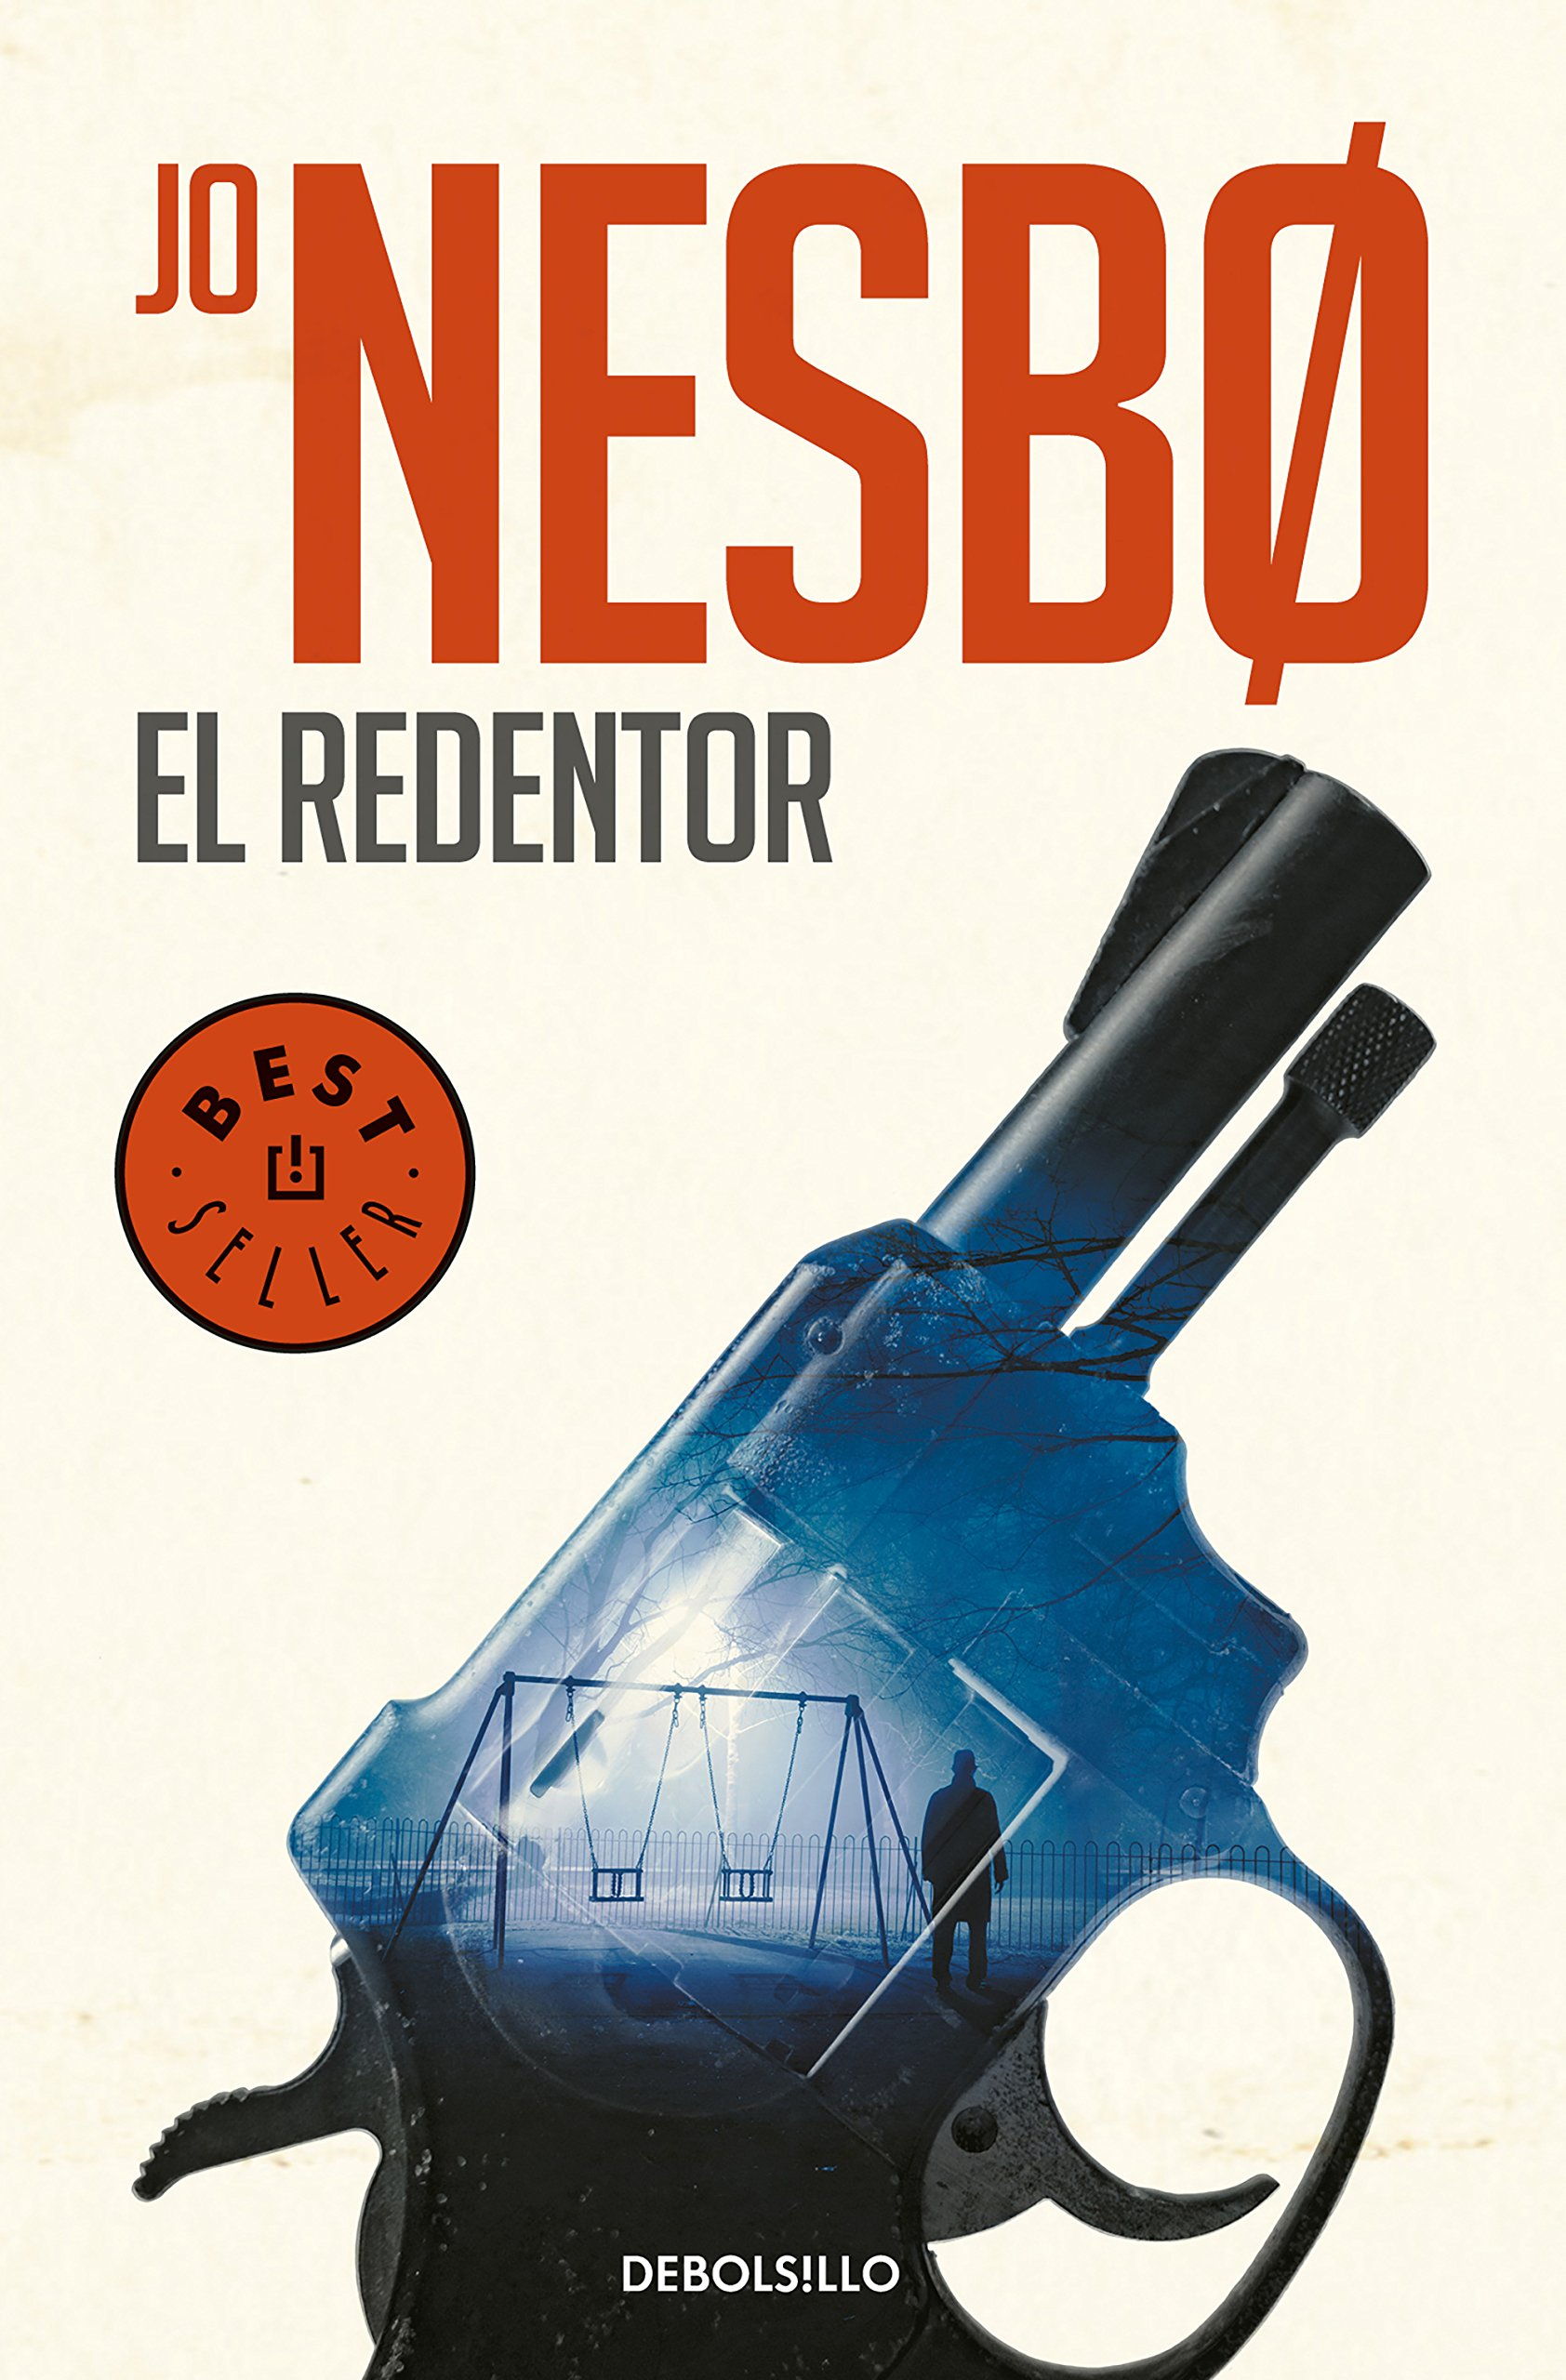 El redentor (Harry Hole 6) (BEST SELLER) Tapa blanda – 14 jun 2018 Jo Nesbo DEBOLSILLO 8466343881 FICTION / Thrillers / Crime